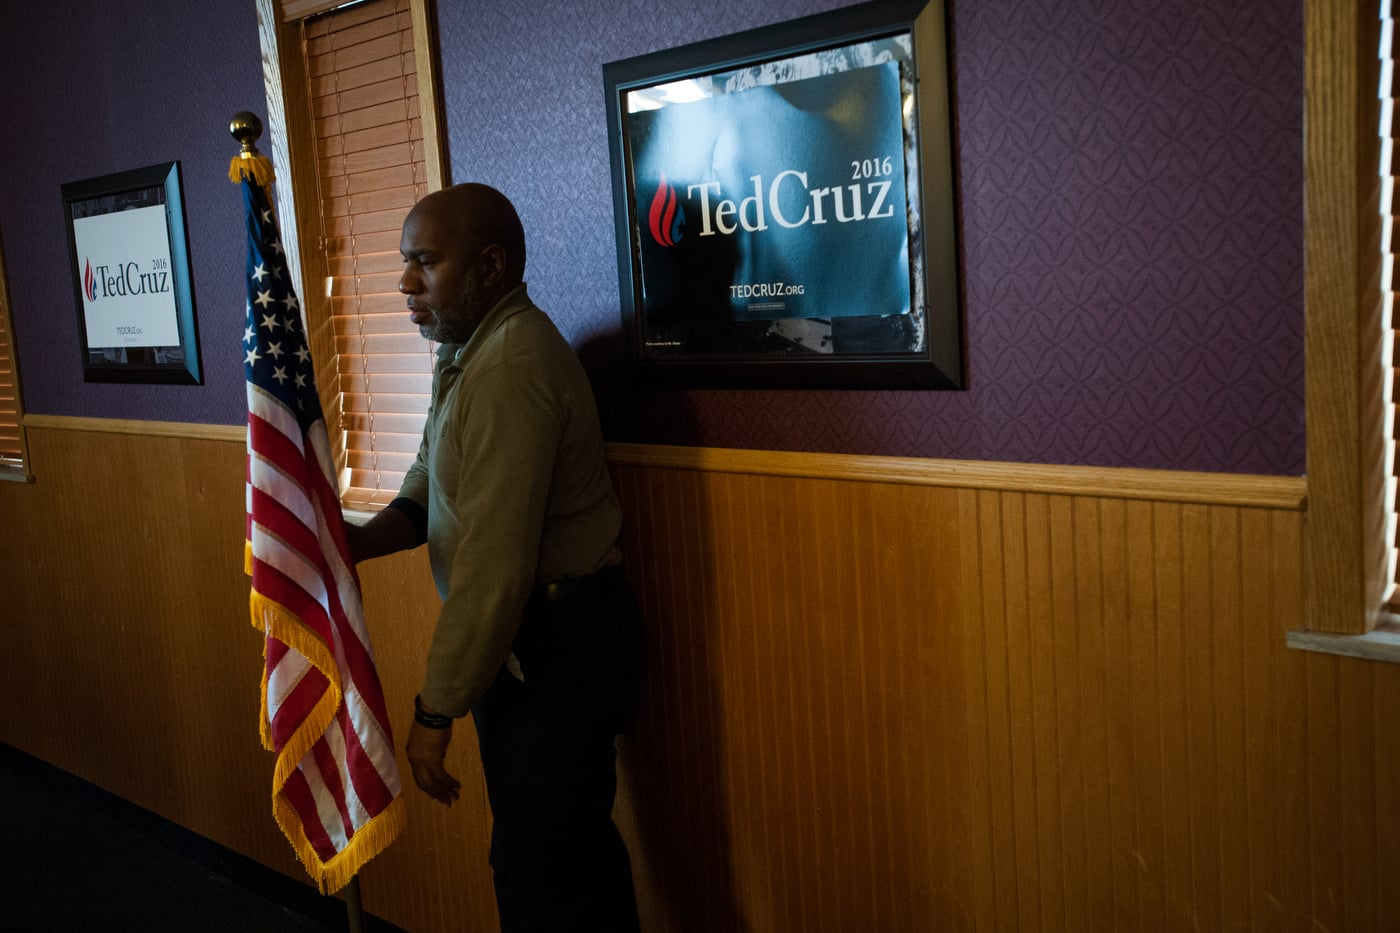 A man adjusts a flag ahead of U.S. Republican presidential candidate Ted Cruz' campaign stop at Godfather's Pizza in Spirit Lake, Iowa January 6, 2016.